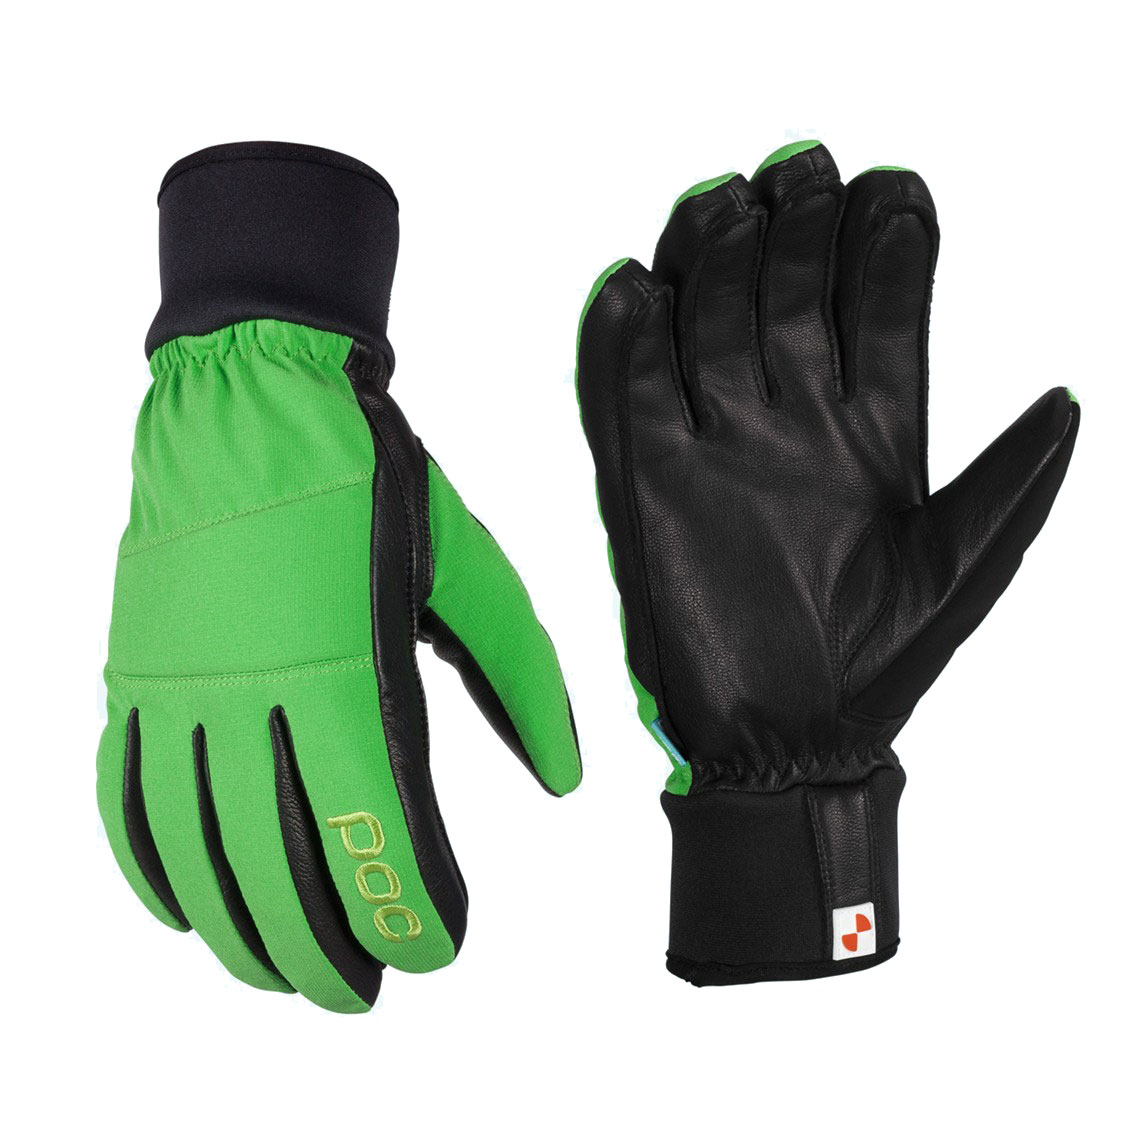 POC Nail Glove, Blister Gear Review